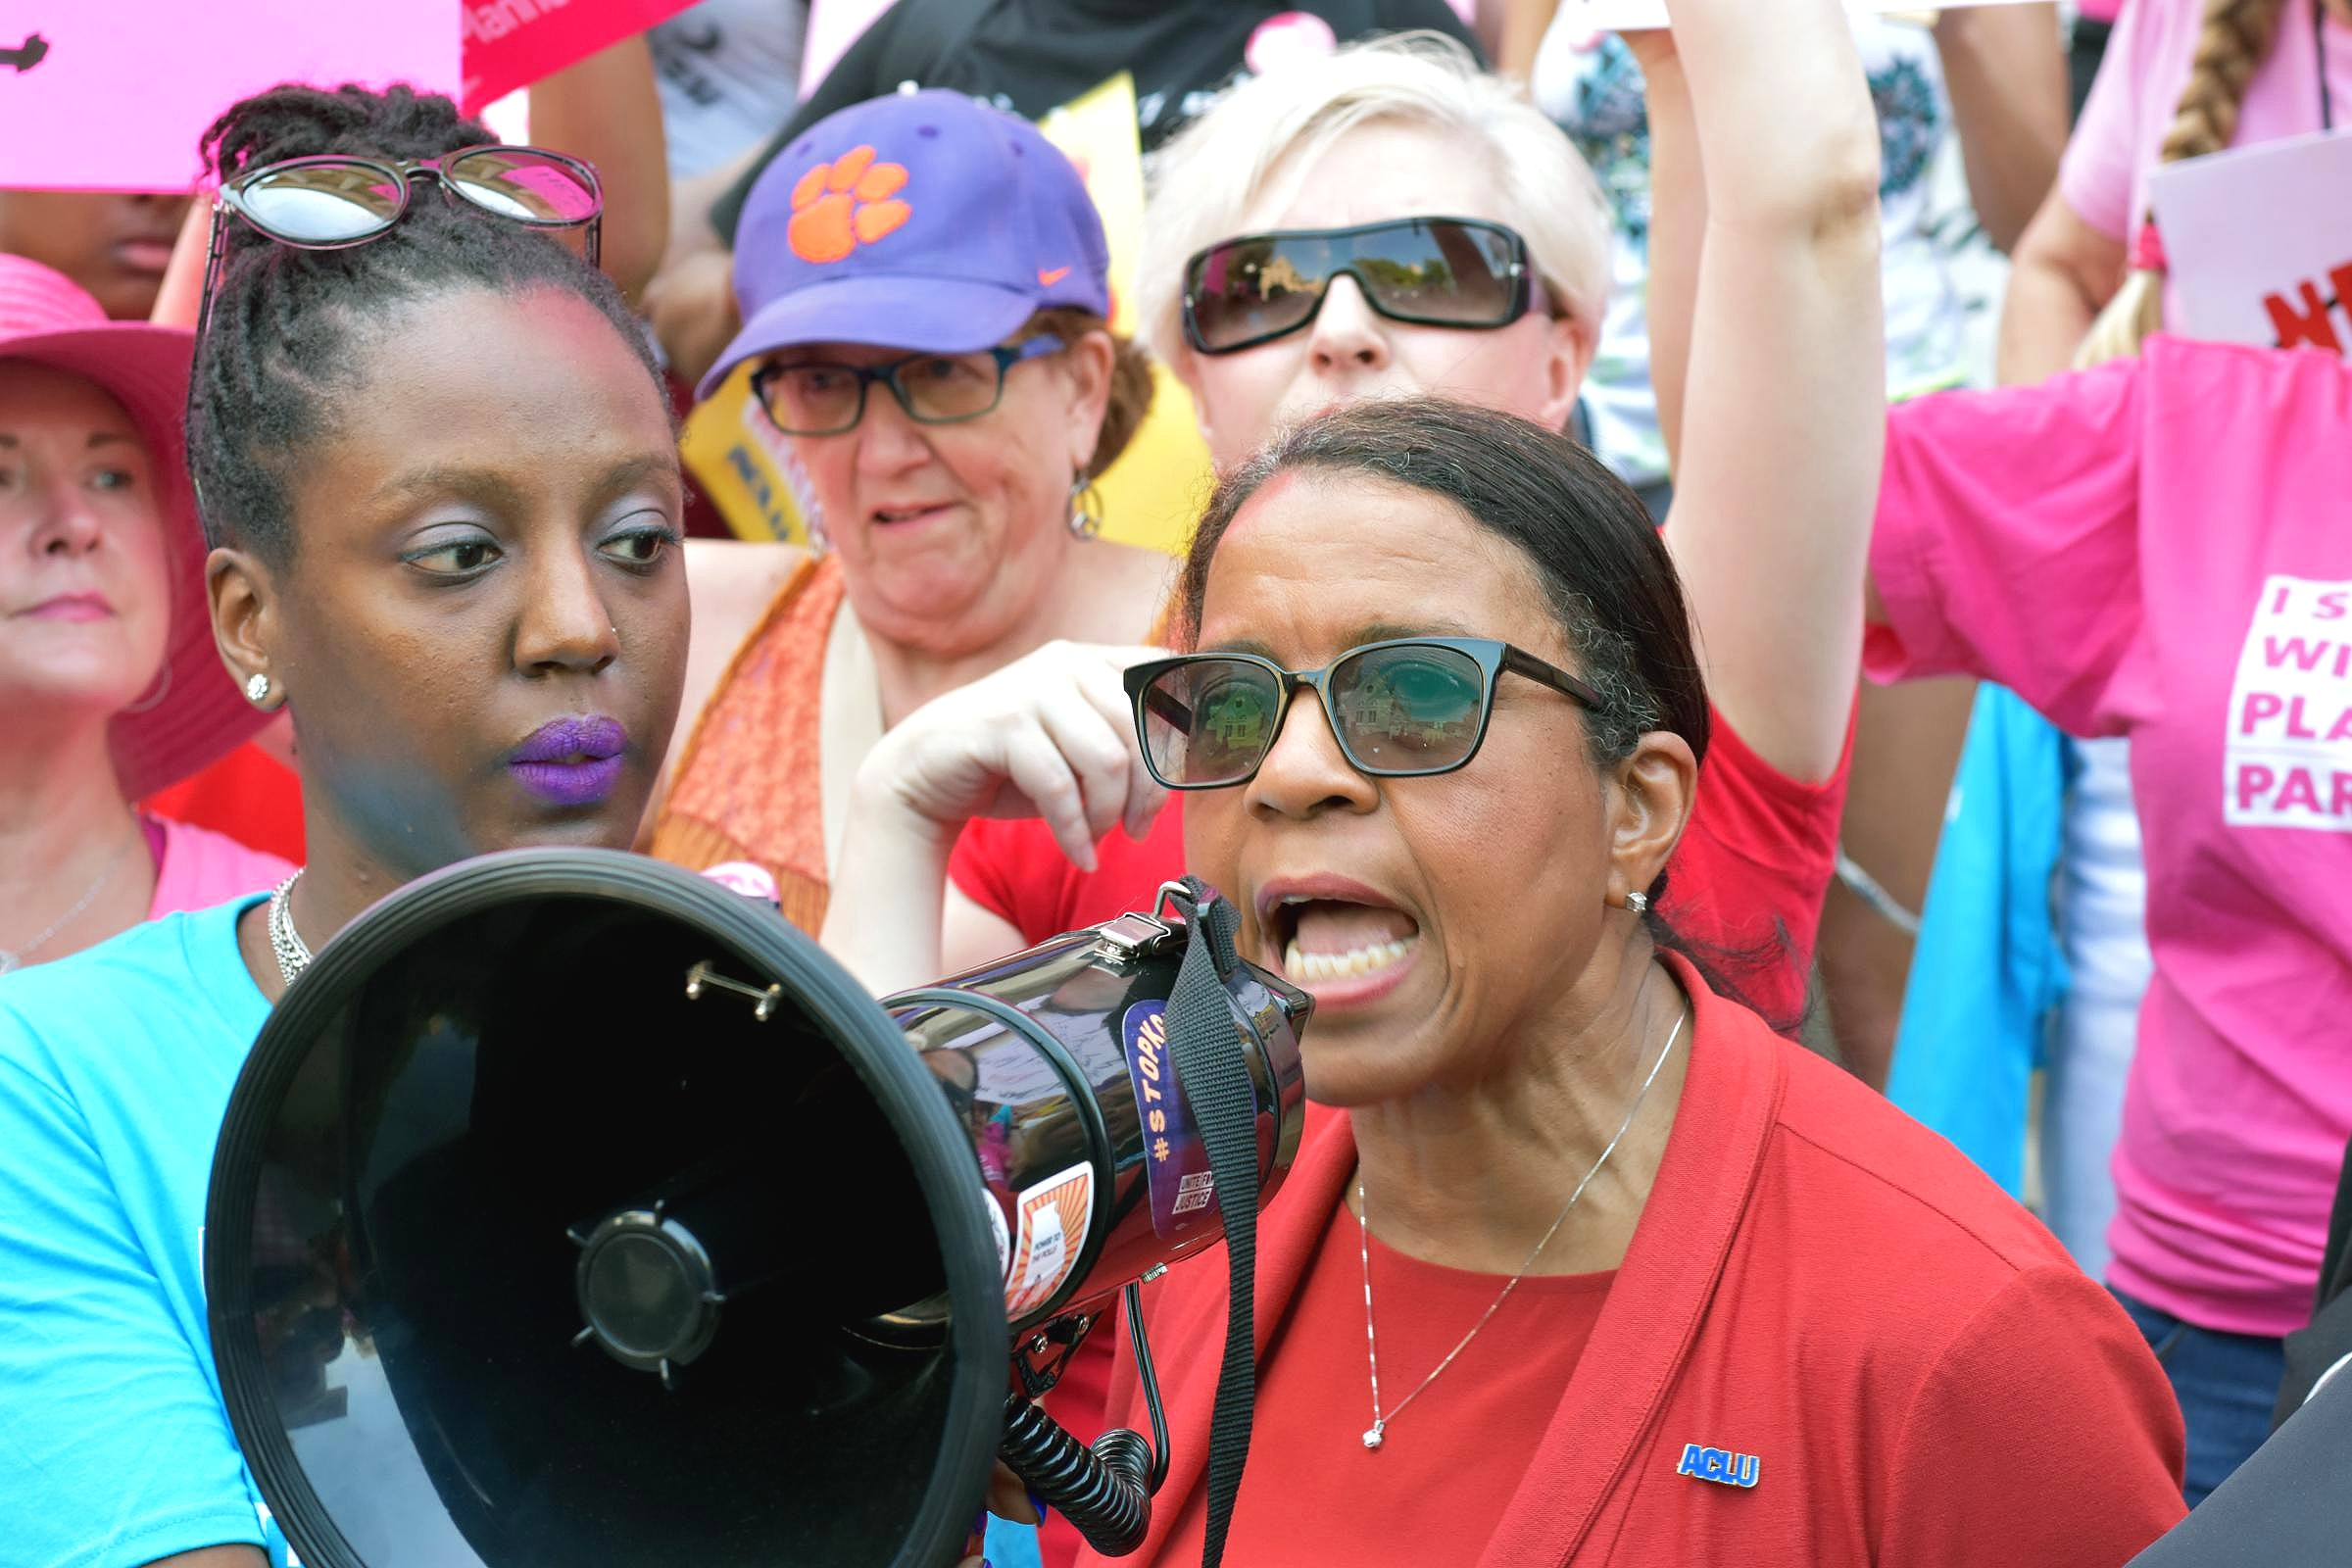 ACLU of Georgia Executive Director Andrea Young speaks into a megaphone at a rally outside of the state capitol building May 21, 2019.